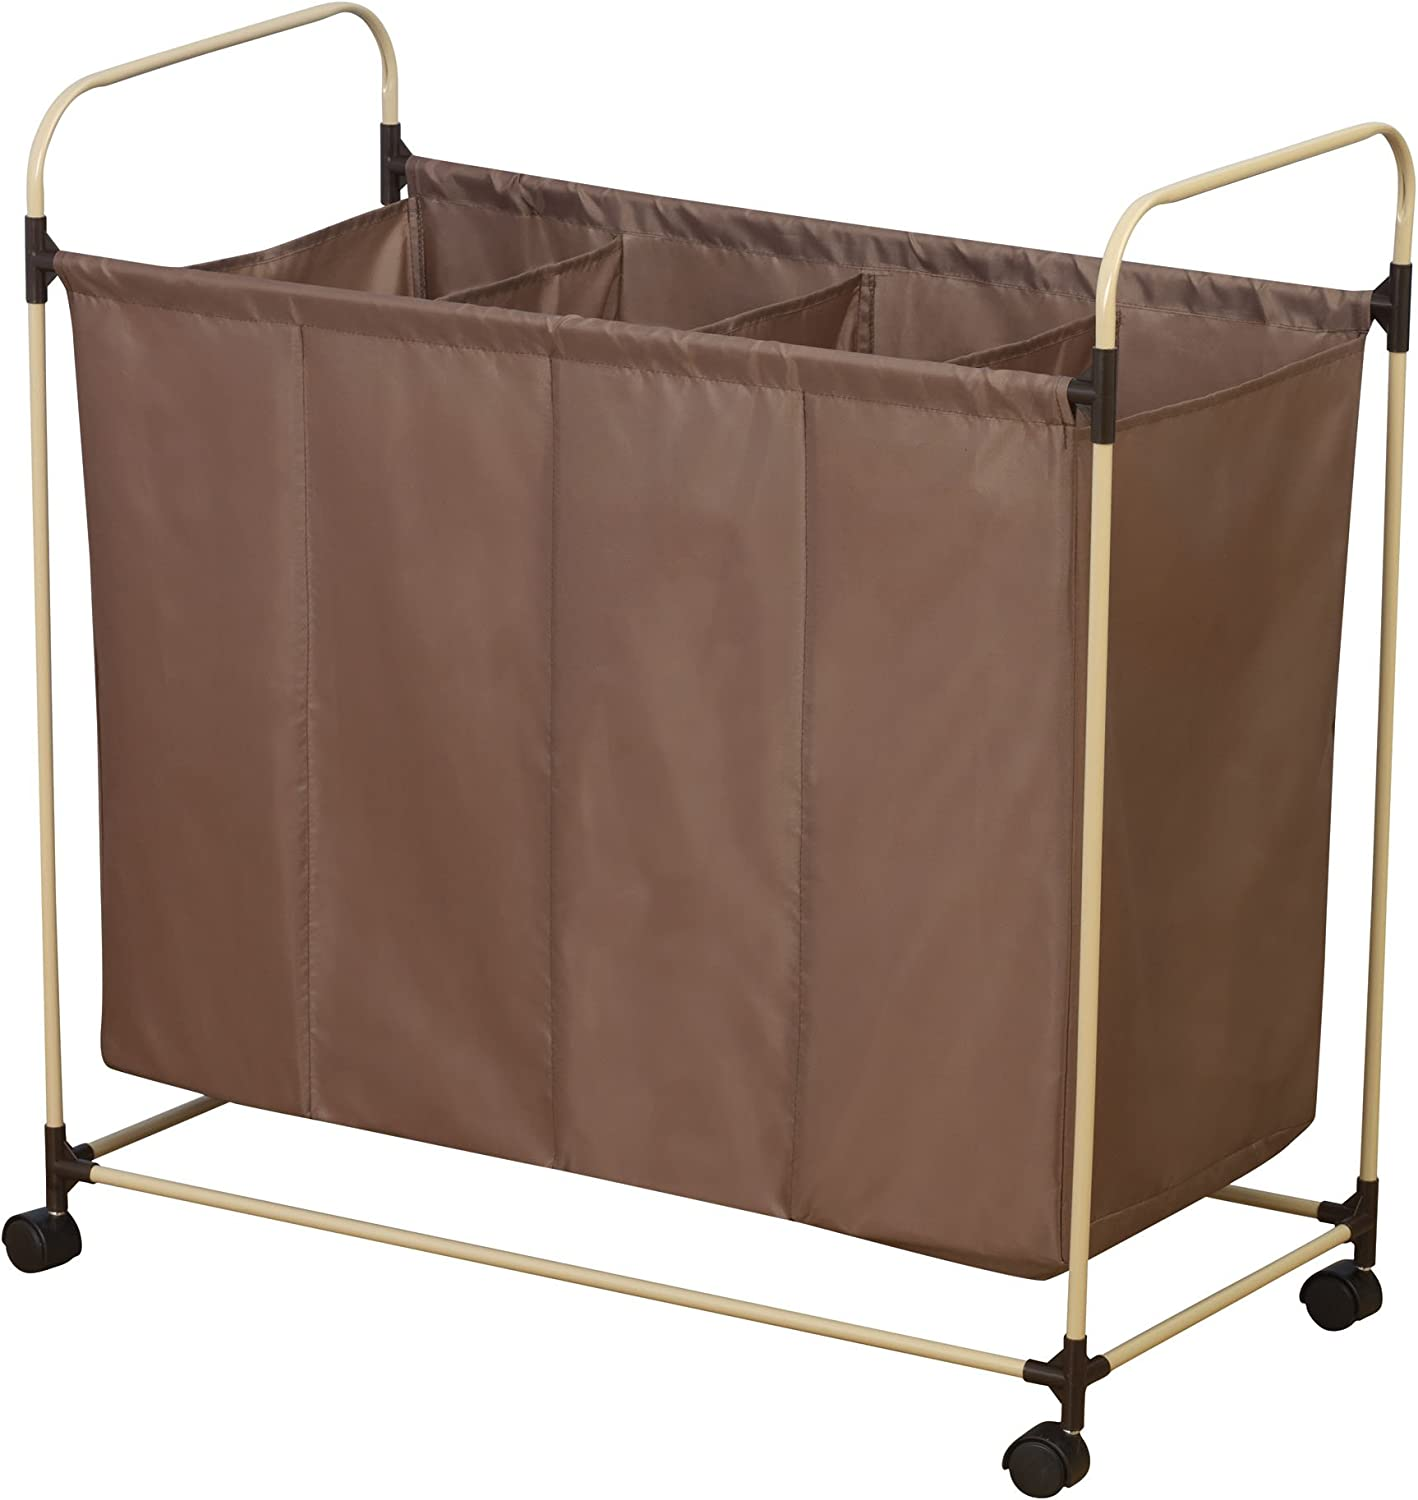 Household Essentials Rolling Quad Sorter Laundry Hamper with Mocha Polyester Bag, Almond Finish Frame